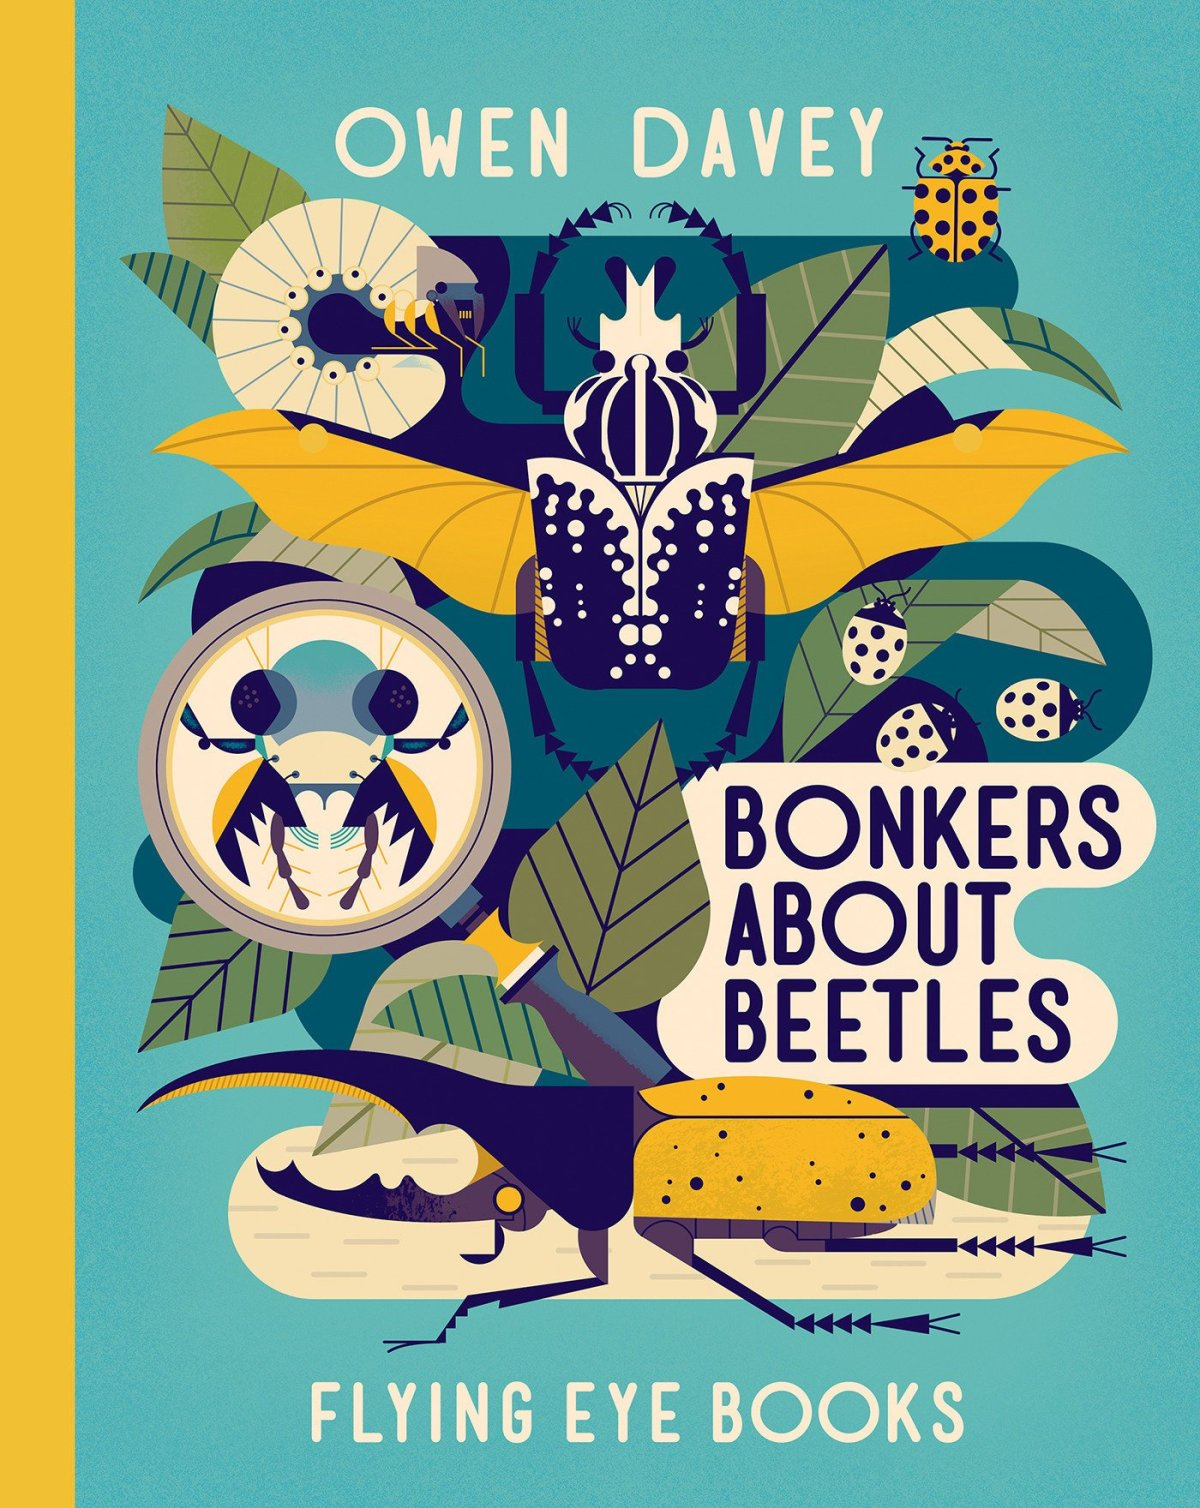 bonkers about beetles cover image